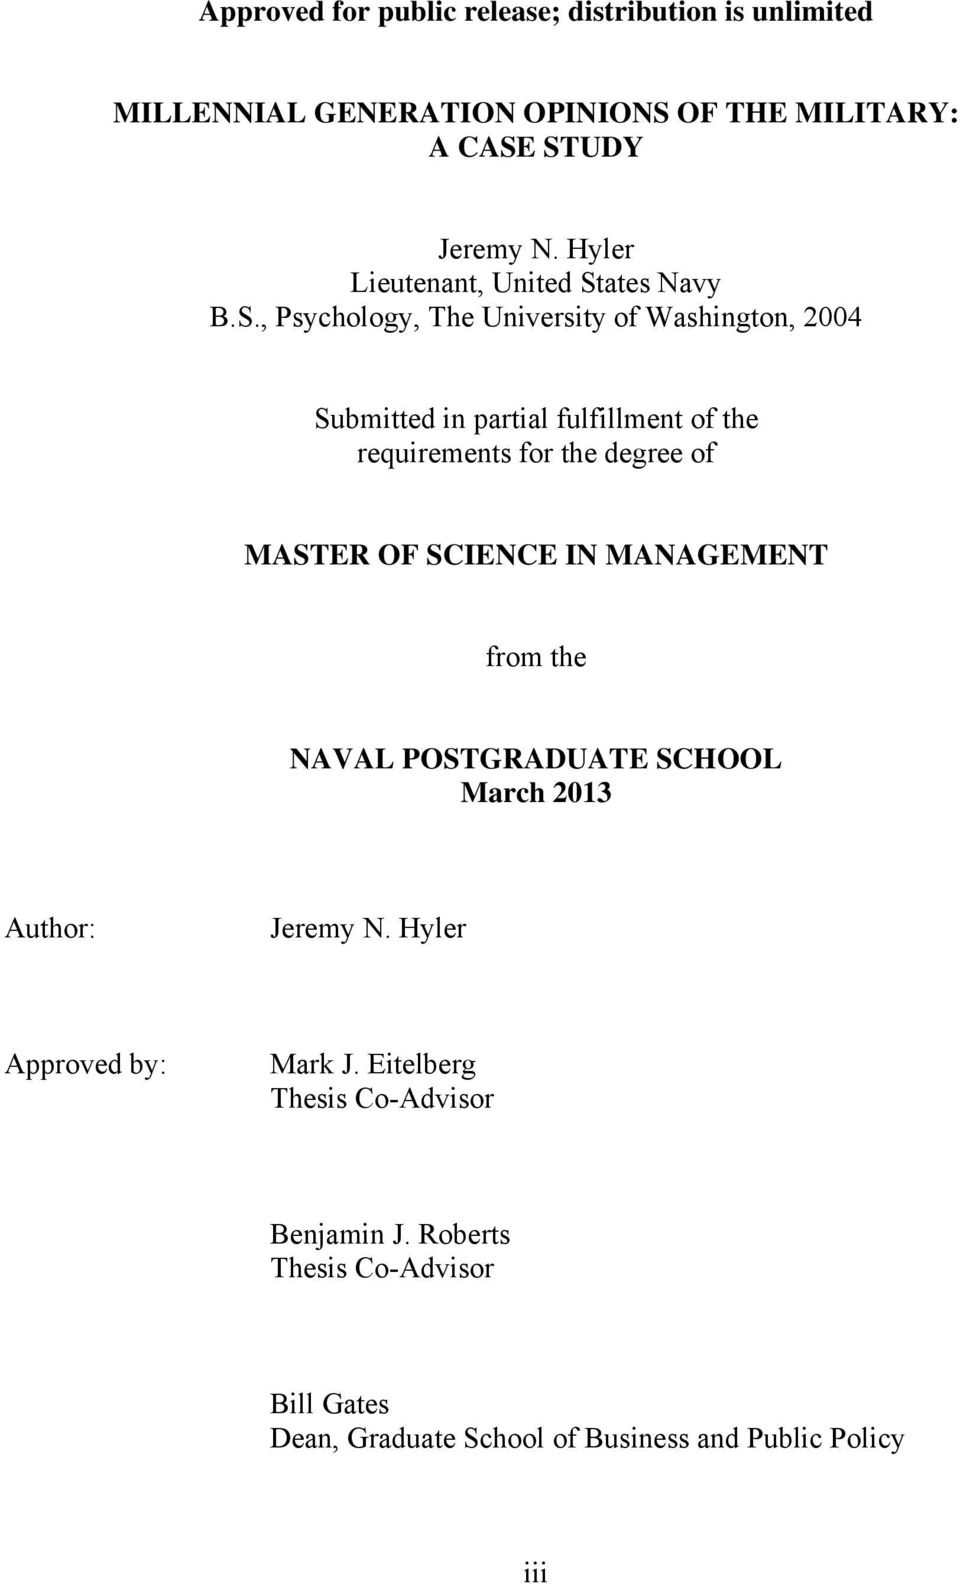 naval postgraduate school thesis search The naval postgraduate school engineering at the us naval academy in 1909 in 1919, the school was renamed the experience to apply to their theses.